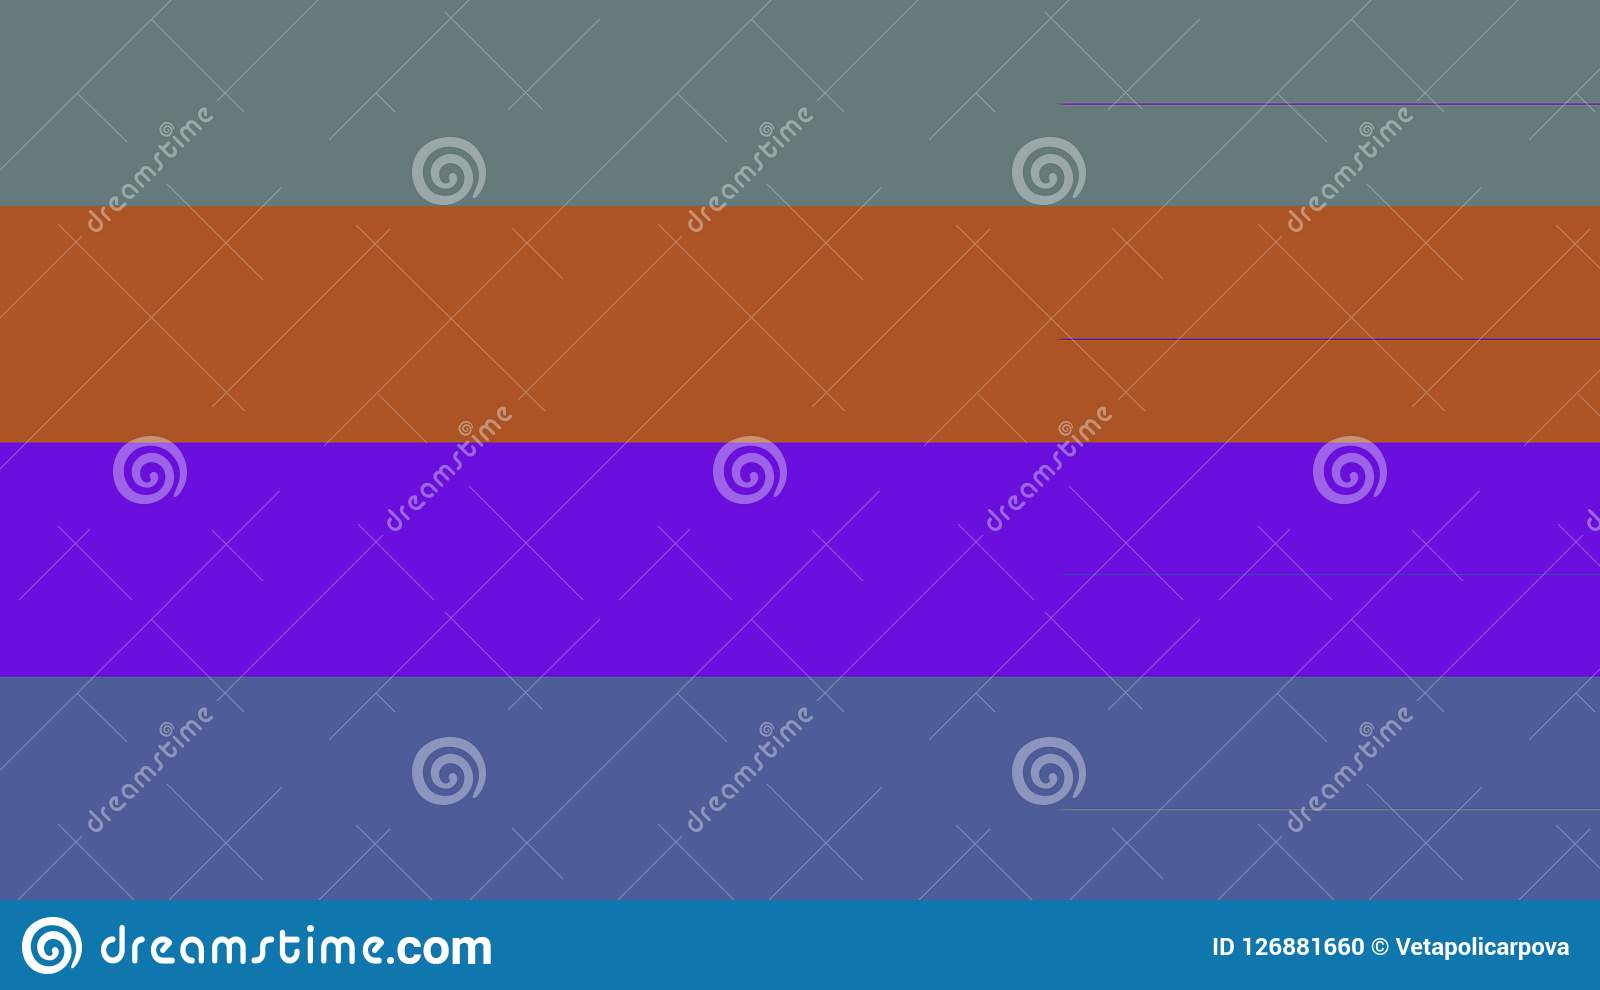 Background With Color Lines Different Shades And Thickness Stock Illustration Illustration Of Hypnotize Smooth 126881660